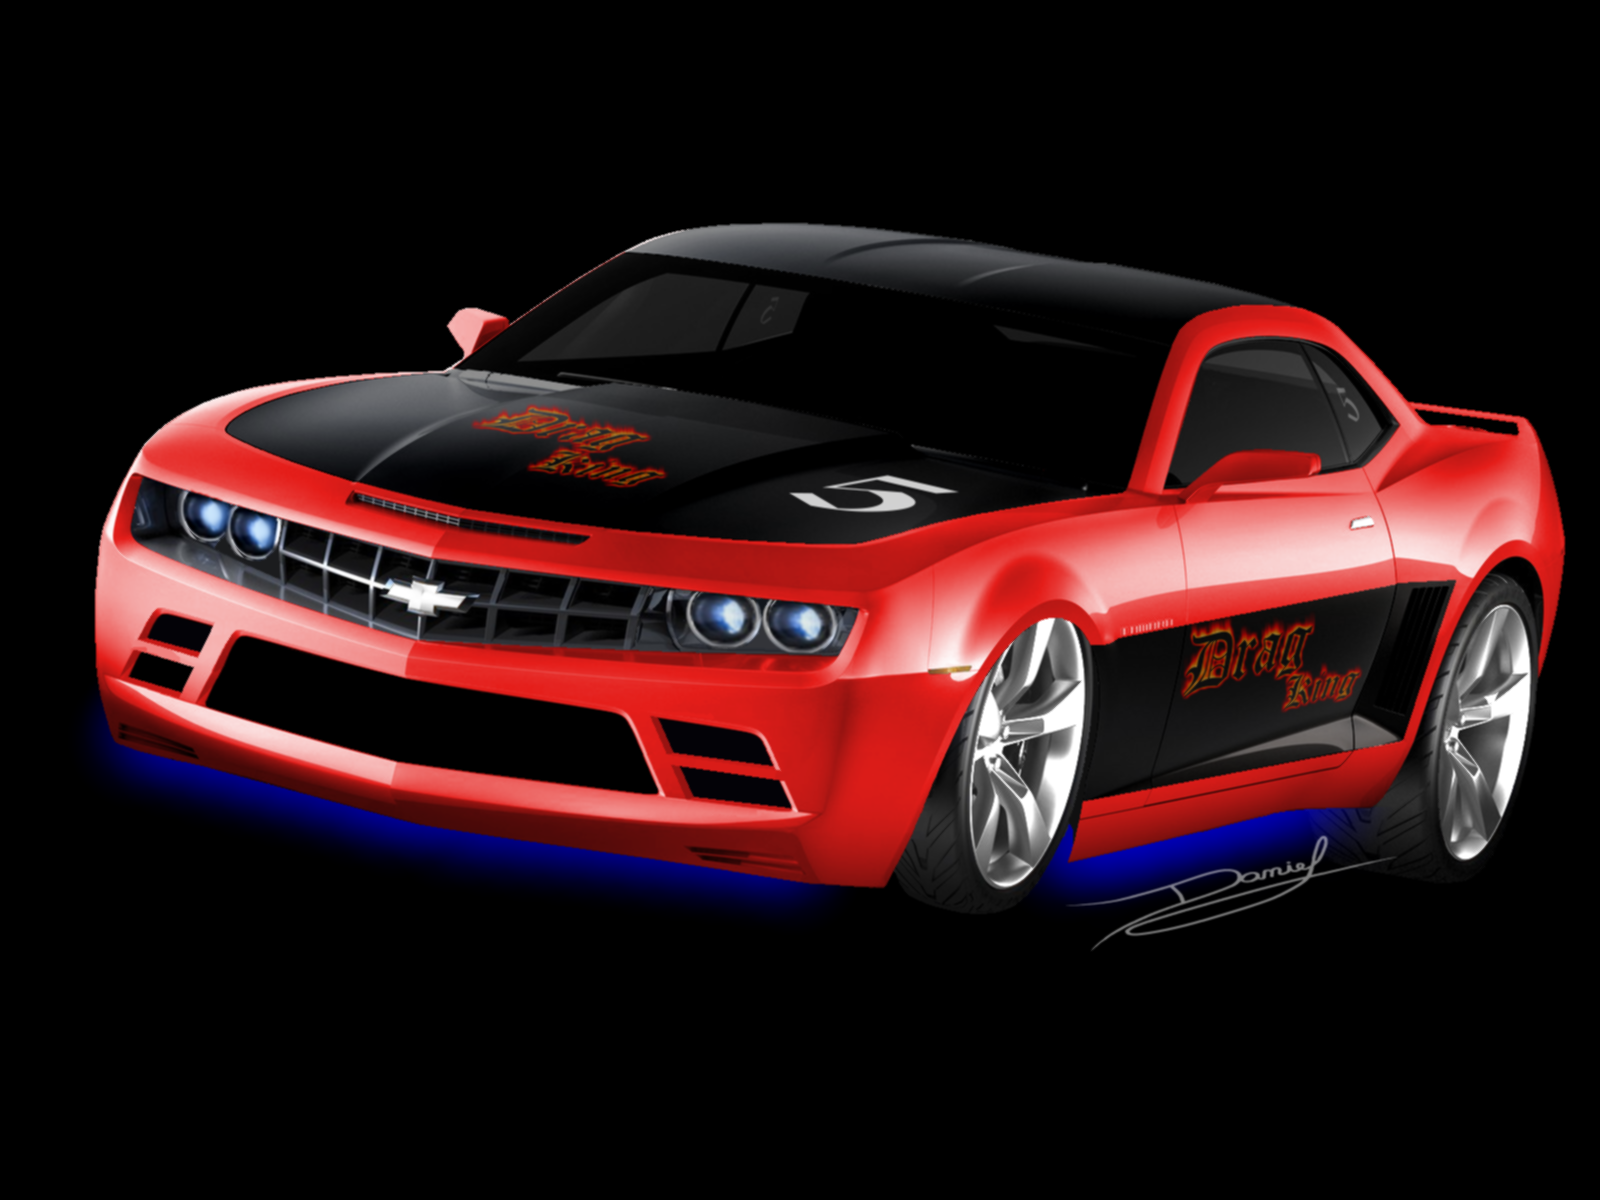 image chevrolet camaro concept tuning png autopedia fandom powered by wikia. Black Bedroom Furniture Sets. Home Design Ideas